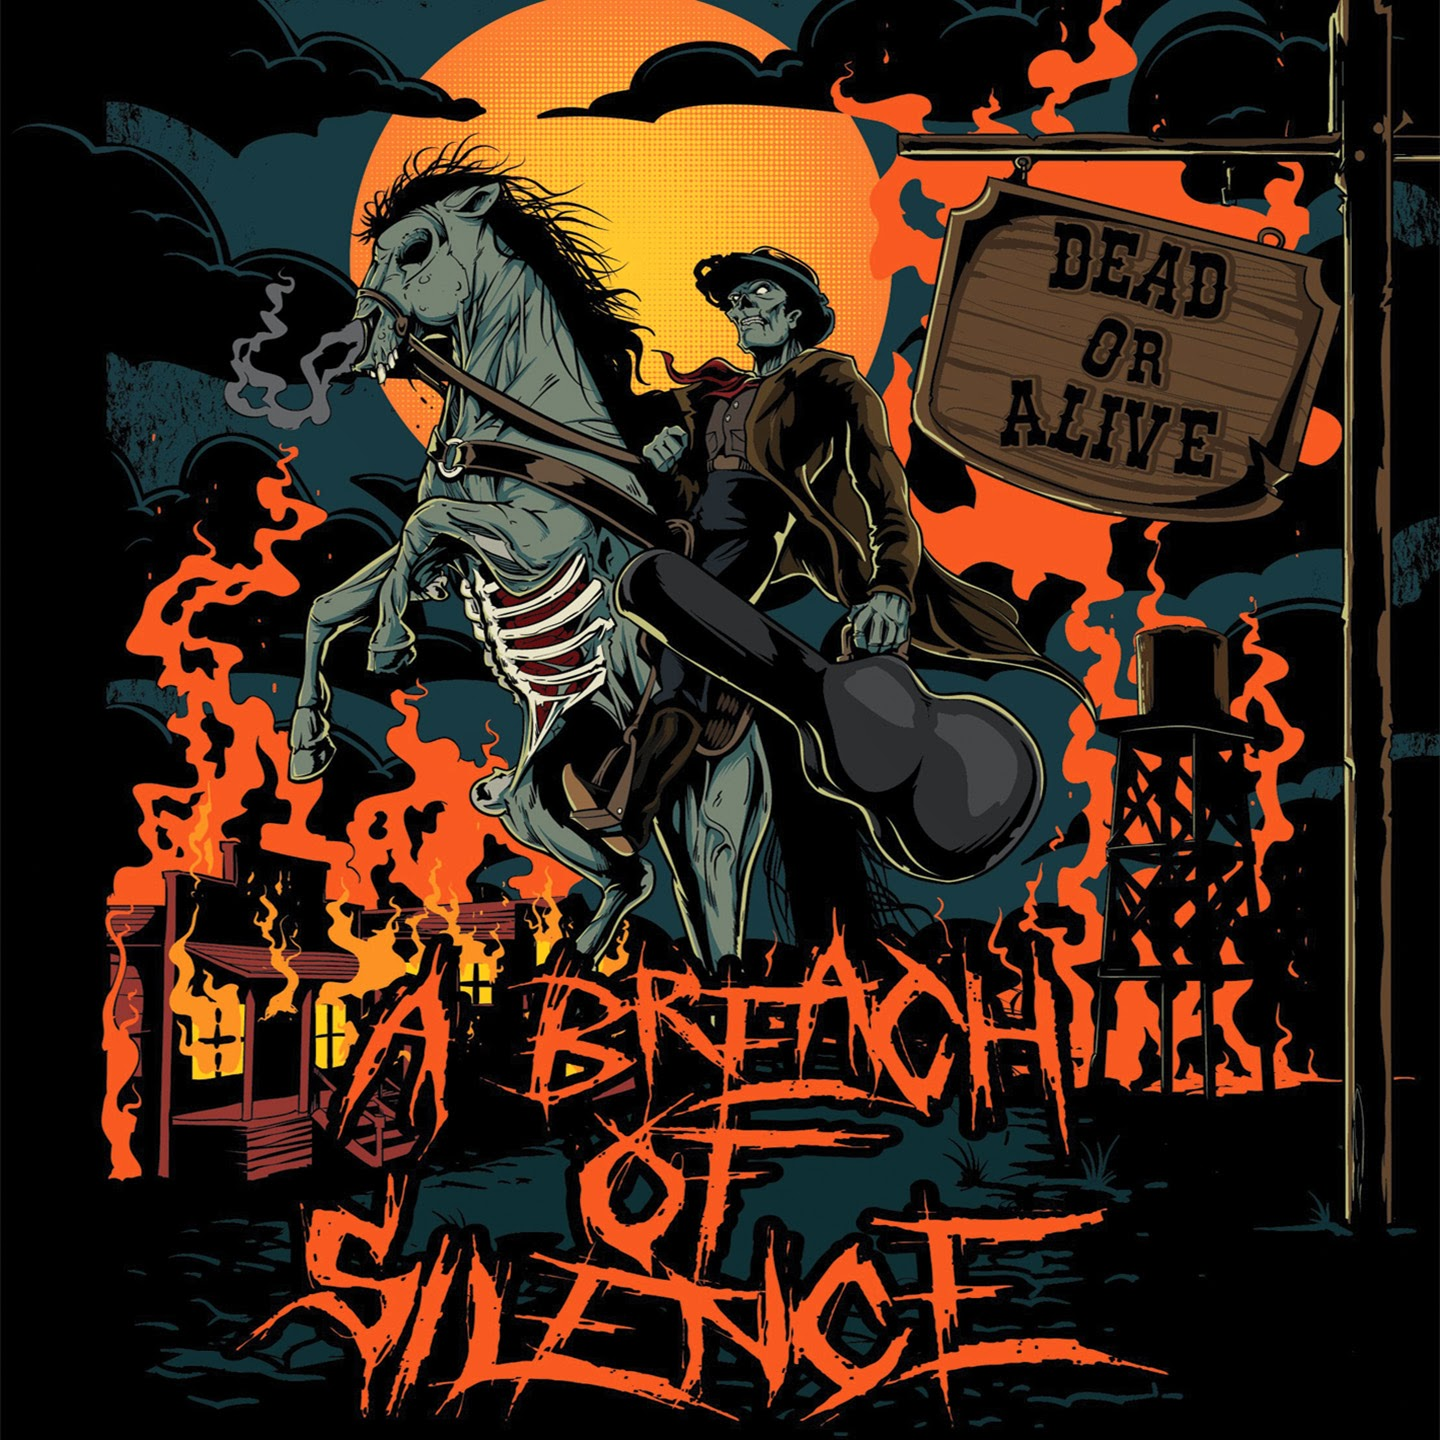 Rock Review Phil A Breach Of Silence Dead Or Alive